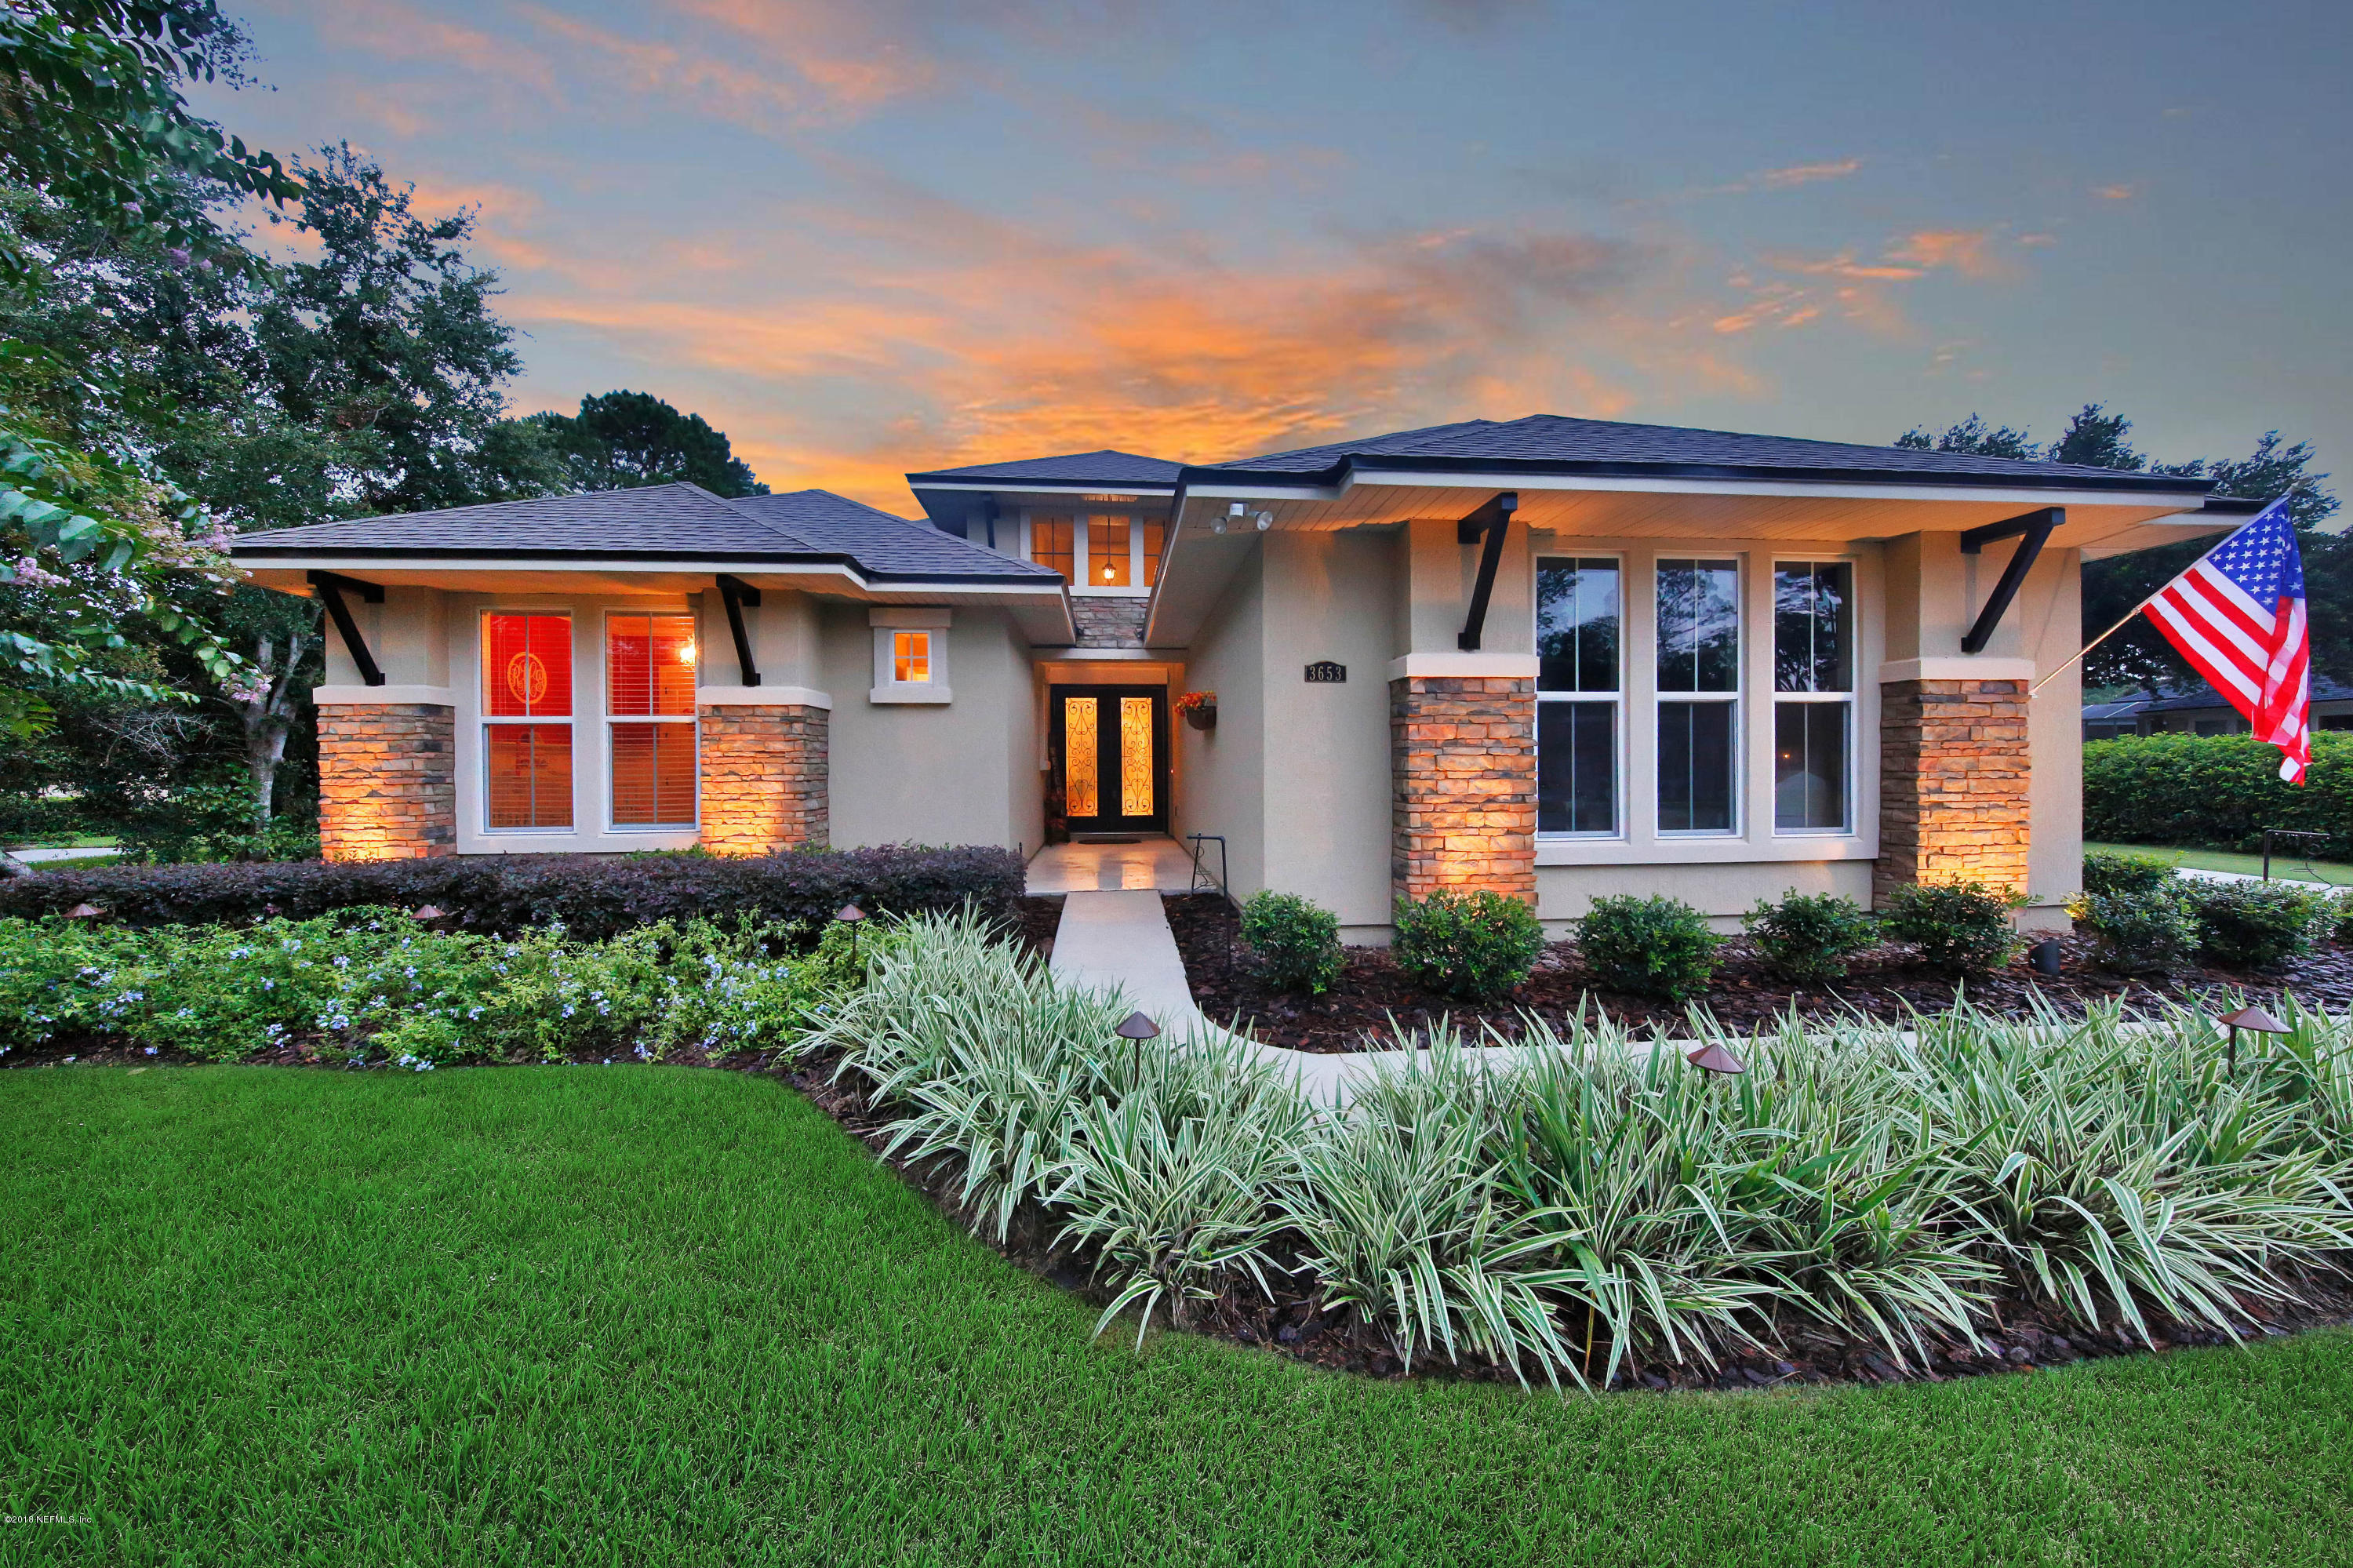 3653 WINGED FOOT, GREEN COVE SPRINGS, FLORIDA 32043, 4 Bedrooms Bedrooms, ,3 BathroomsBathrooms,Residential - single family,For sale,WINGED FOOT,949184